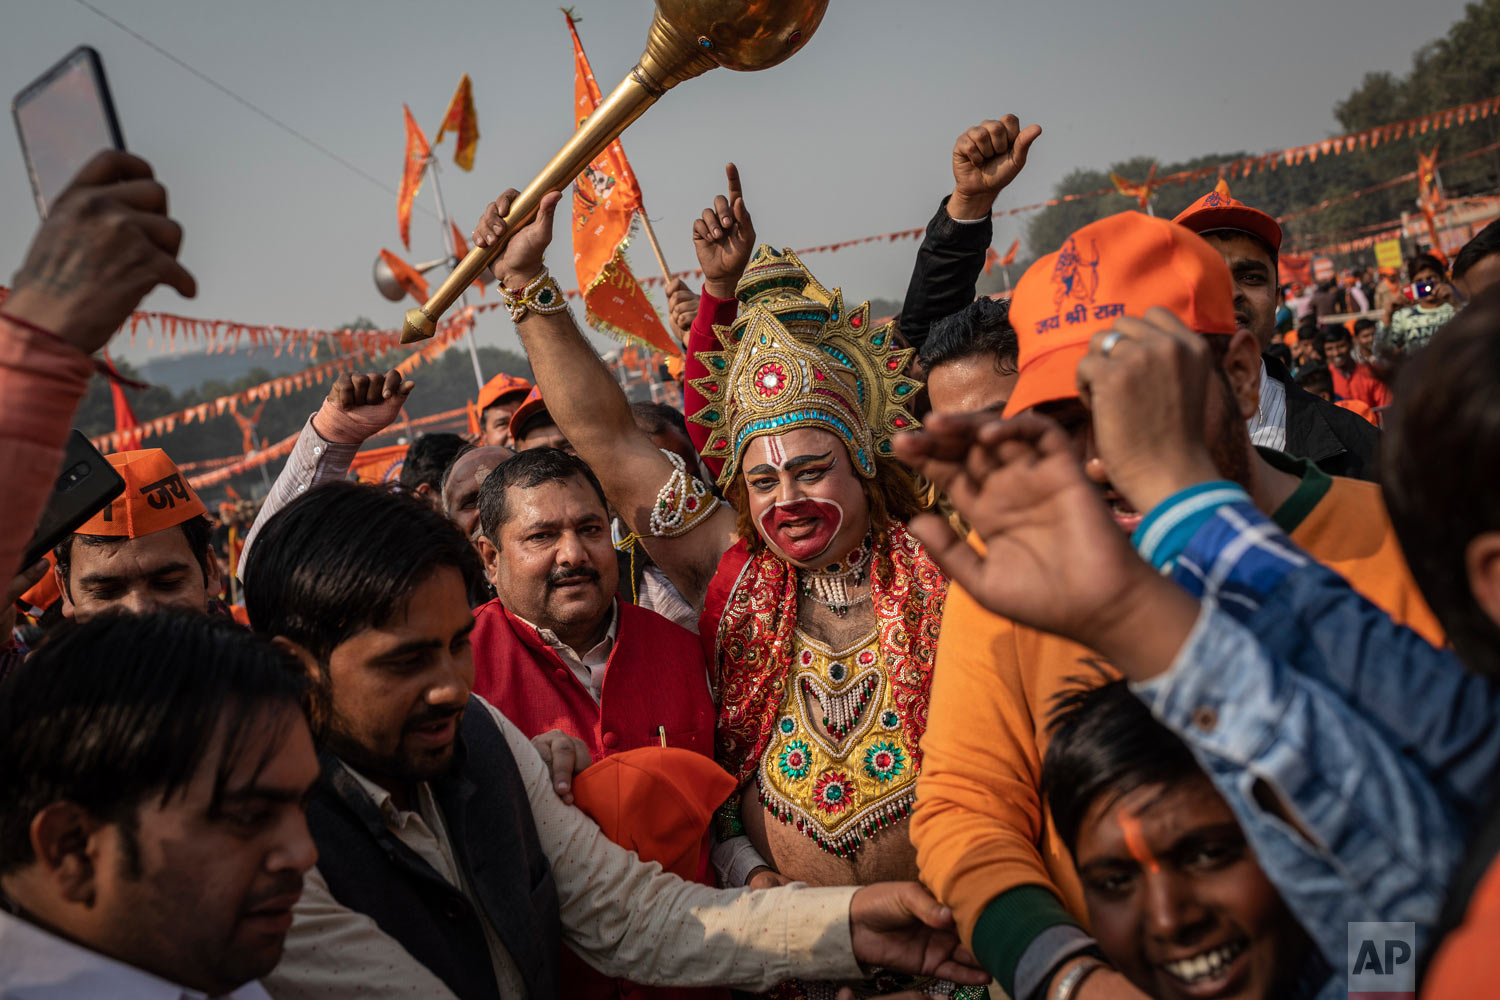 A supporter of the Hindu nationalist political group Vishwa Hindu Parishad is dressed as the Hindu deity Hanuman during a rally in New Delhi, India, Dec. 9, 2018. (AP Photo/Bernat Armangue)